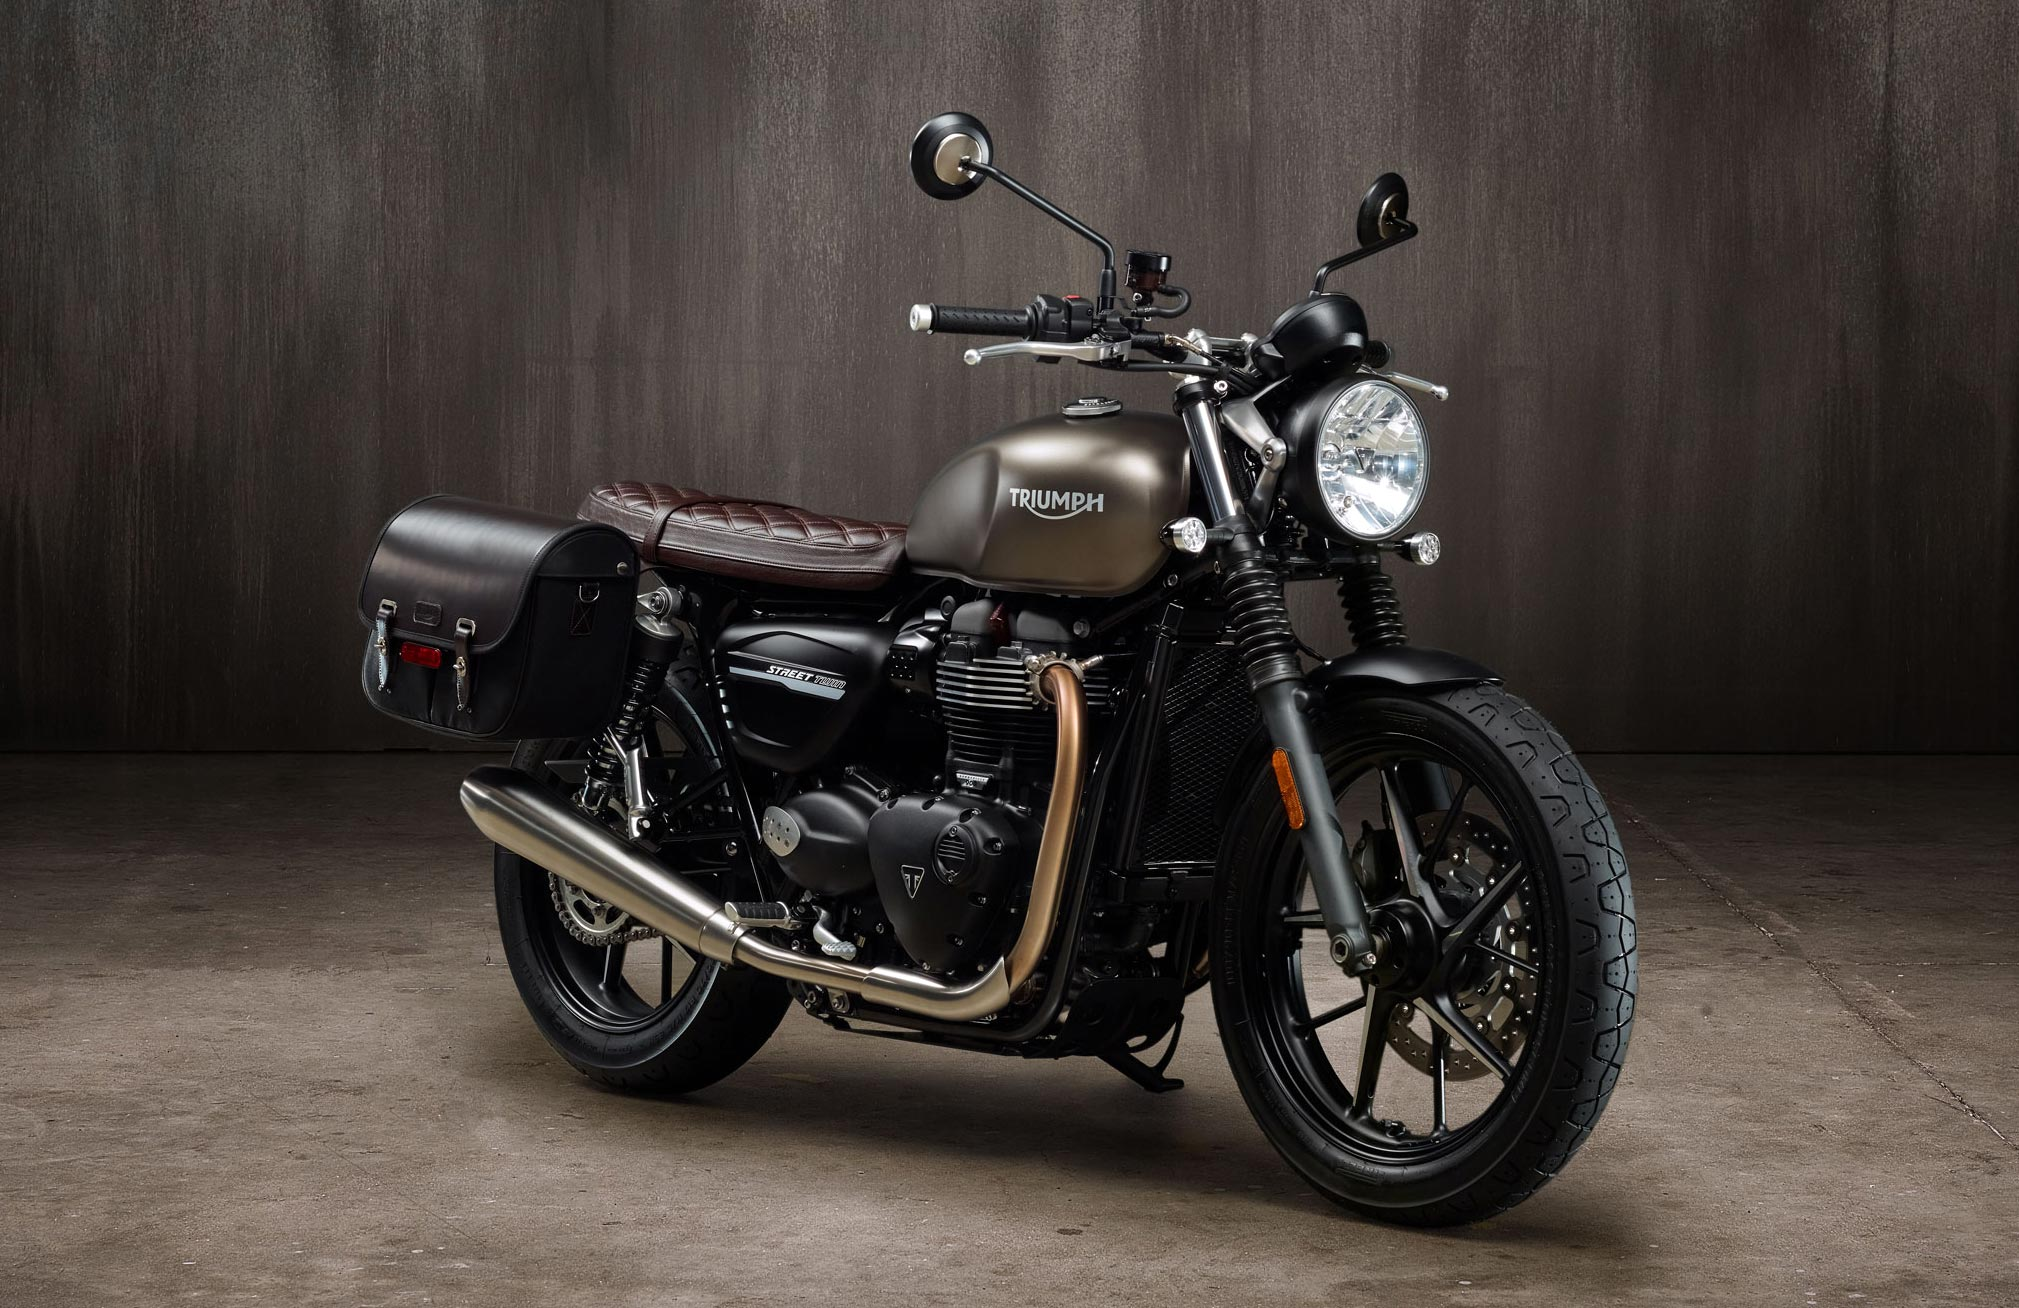 2019 triumph street twin guide total motorcycle. Black Bedroom Furniture Sets. Home Design Ideas